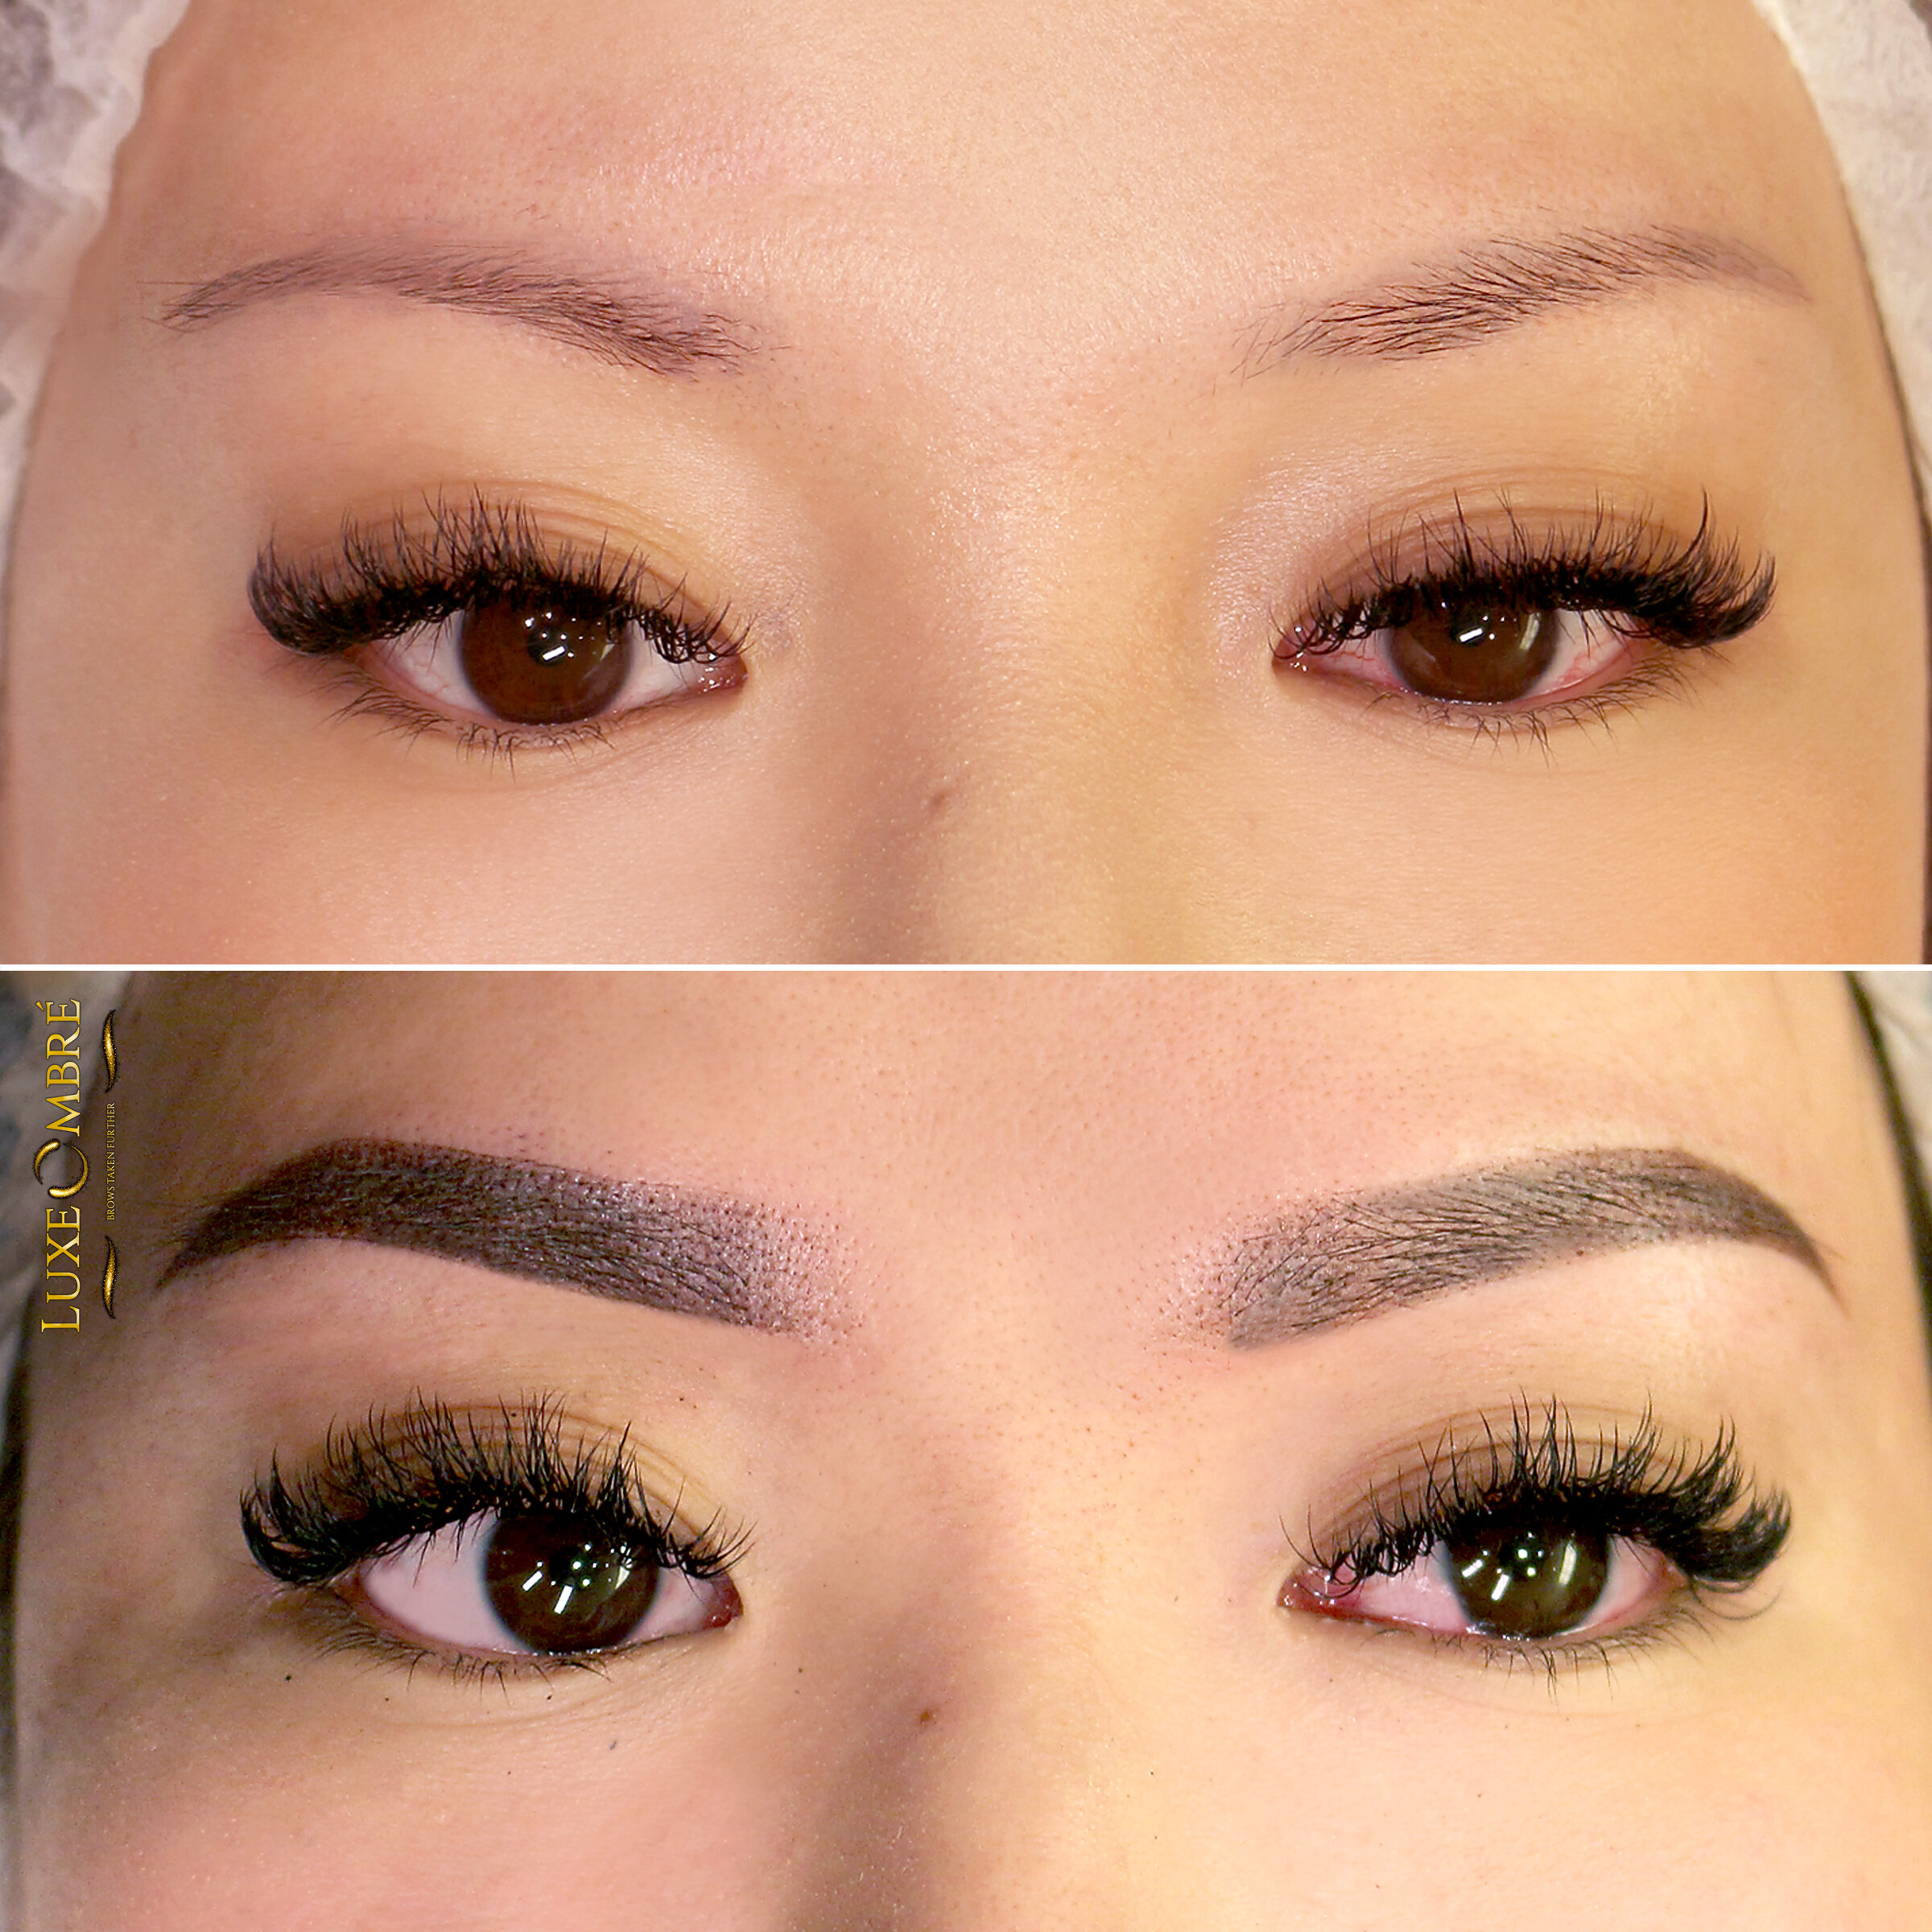 LuxeOmbre technique to ordinary and rather weak brows.